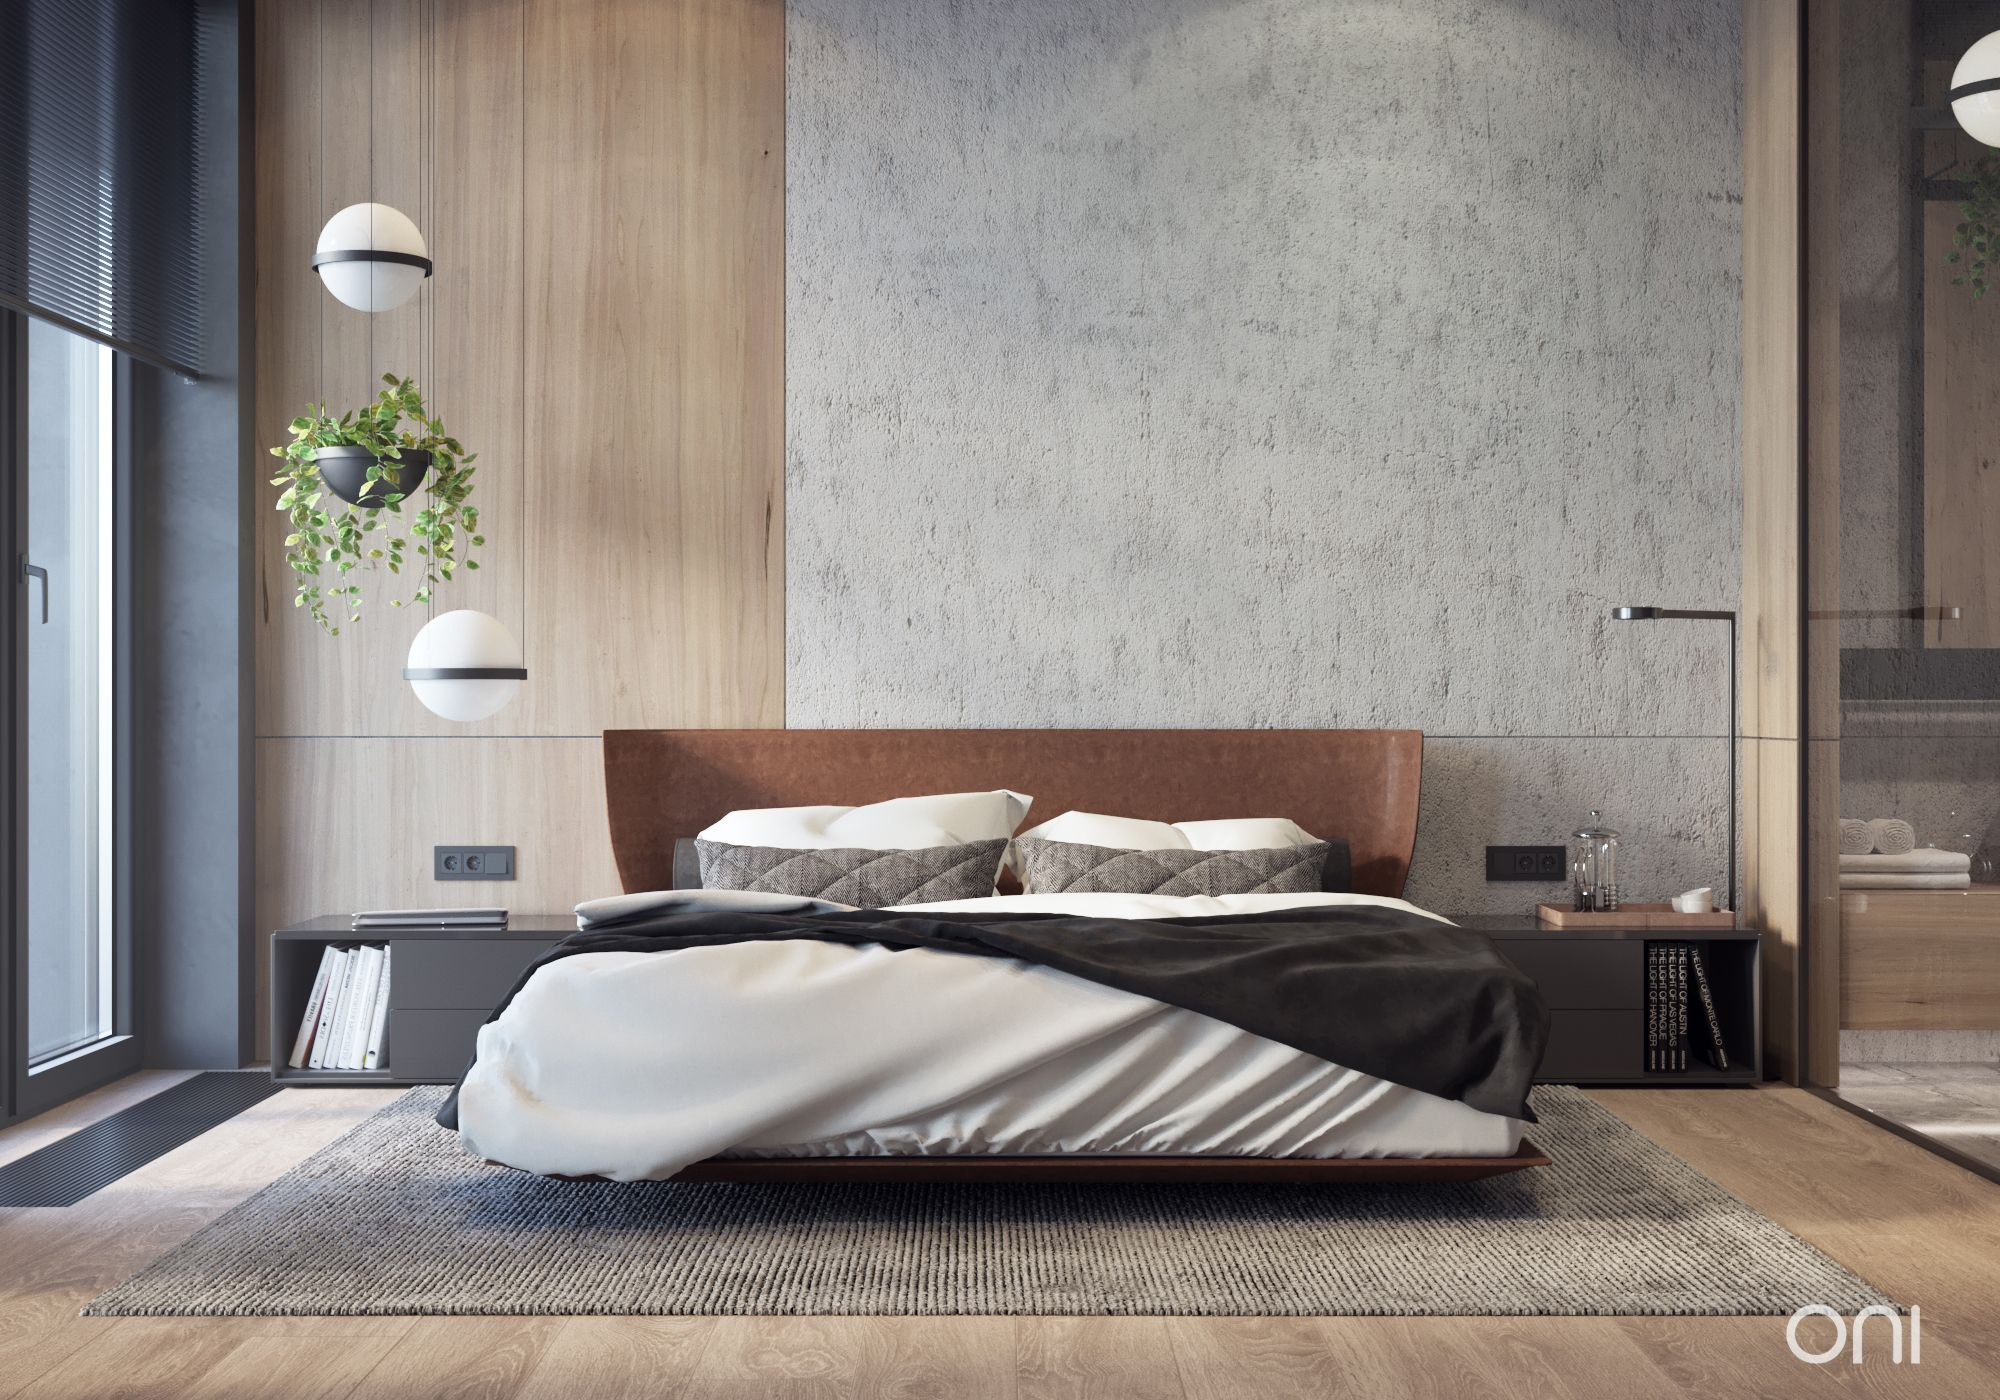 THE COZY LOFT on Behance | wood loft | Bedroom, Dream ...